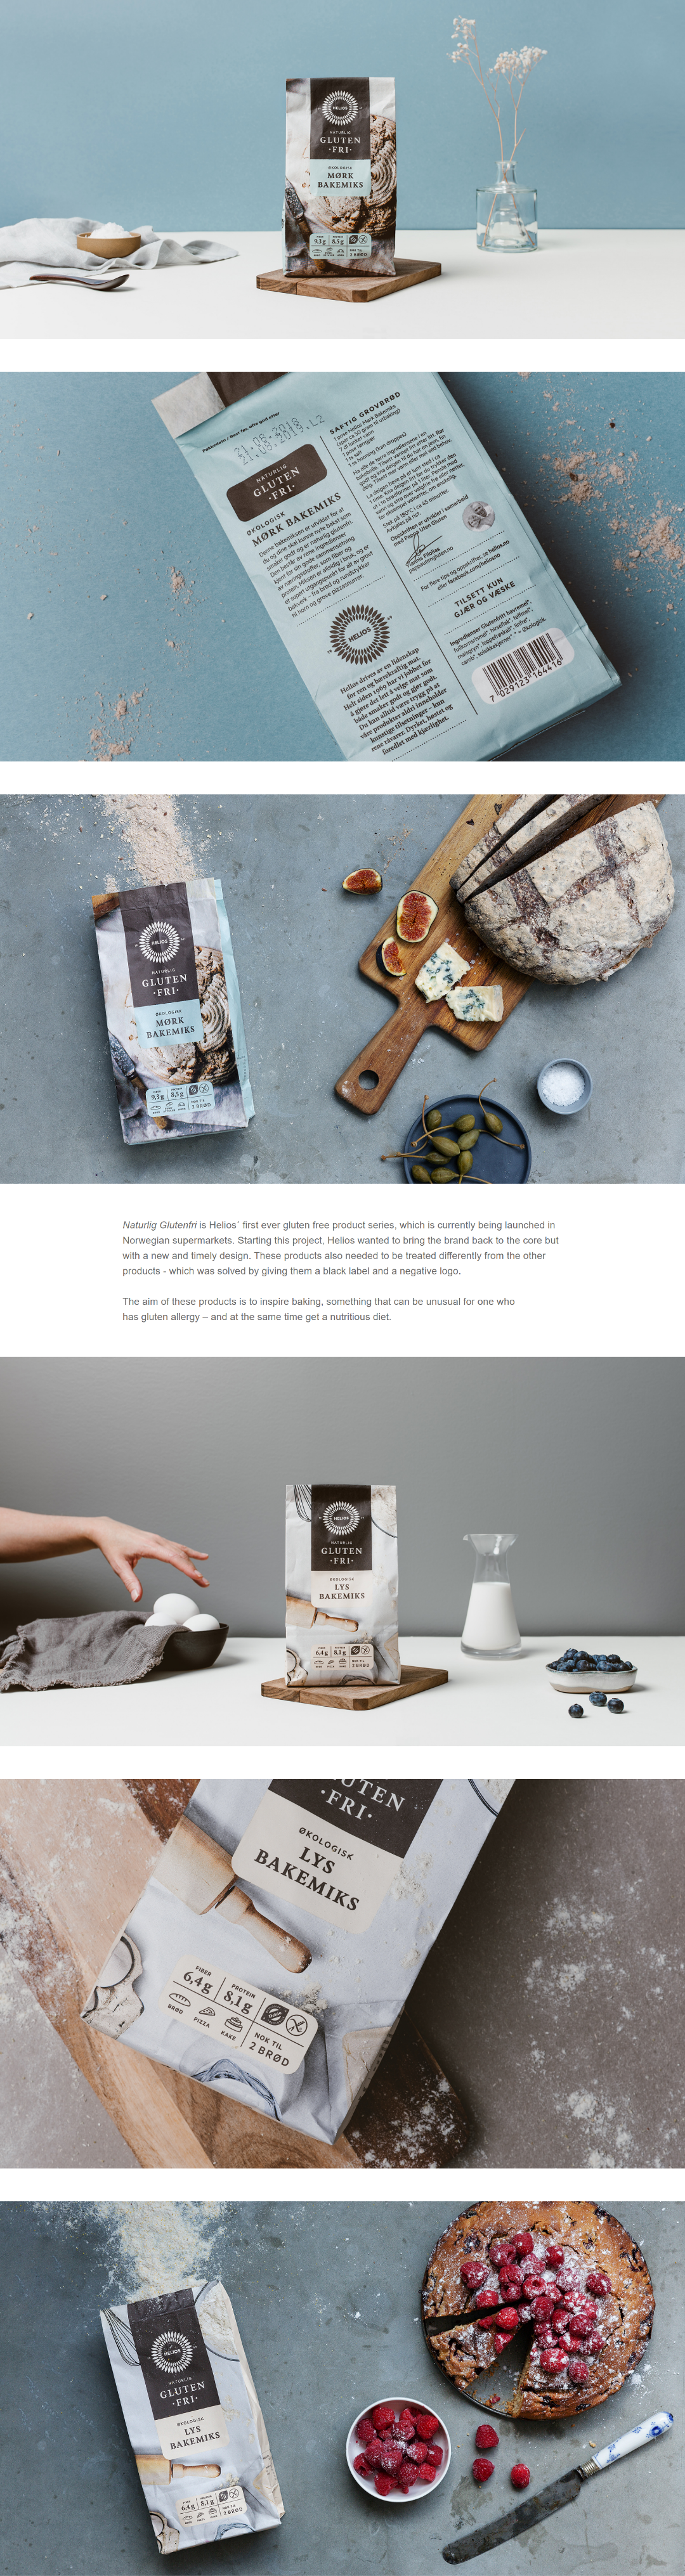 Branding,Graphic Design,Packaging